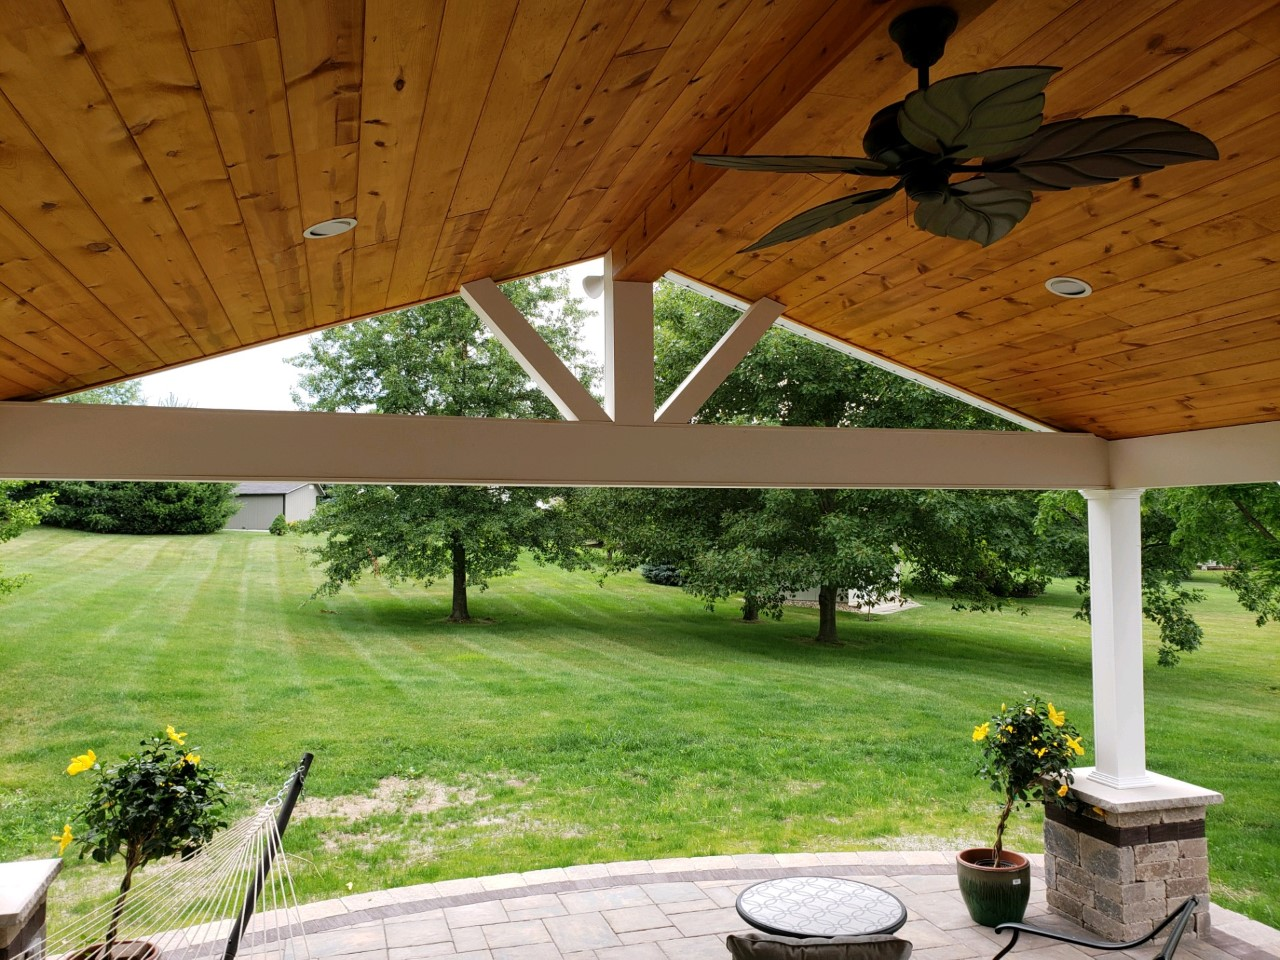 An-open-gable-end-and-ceiling-fan-aids-in-keeping-the-patio-cover-cool-and-comfortable